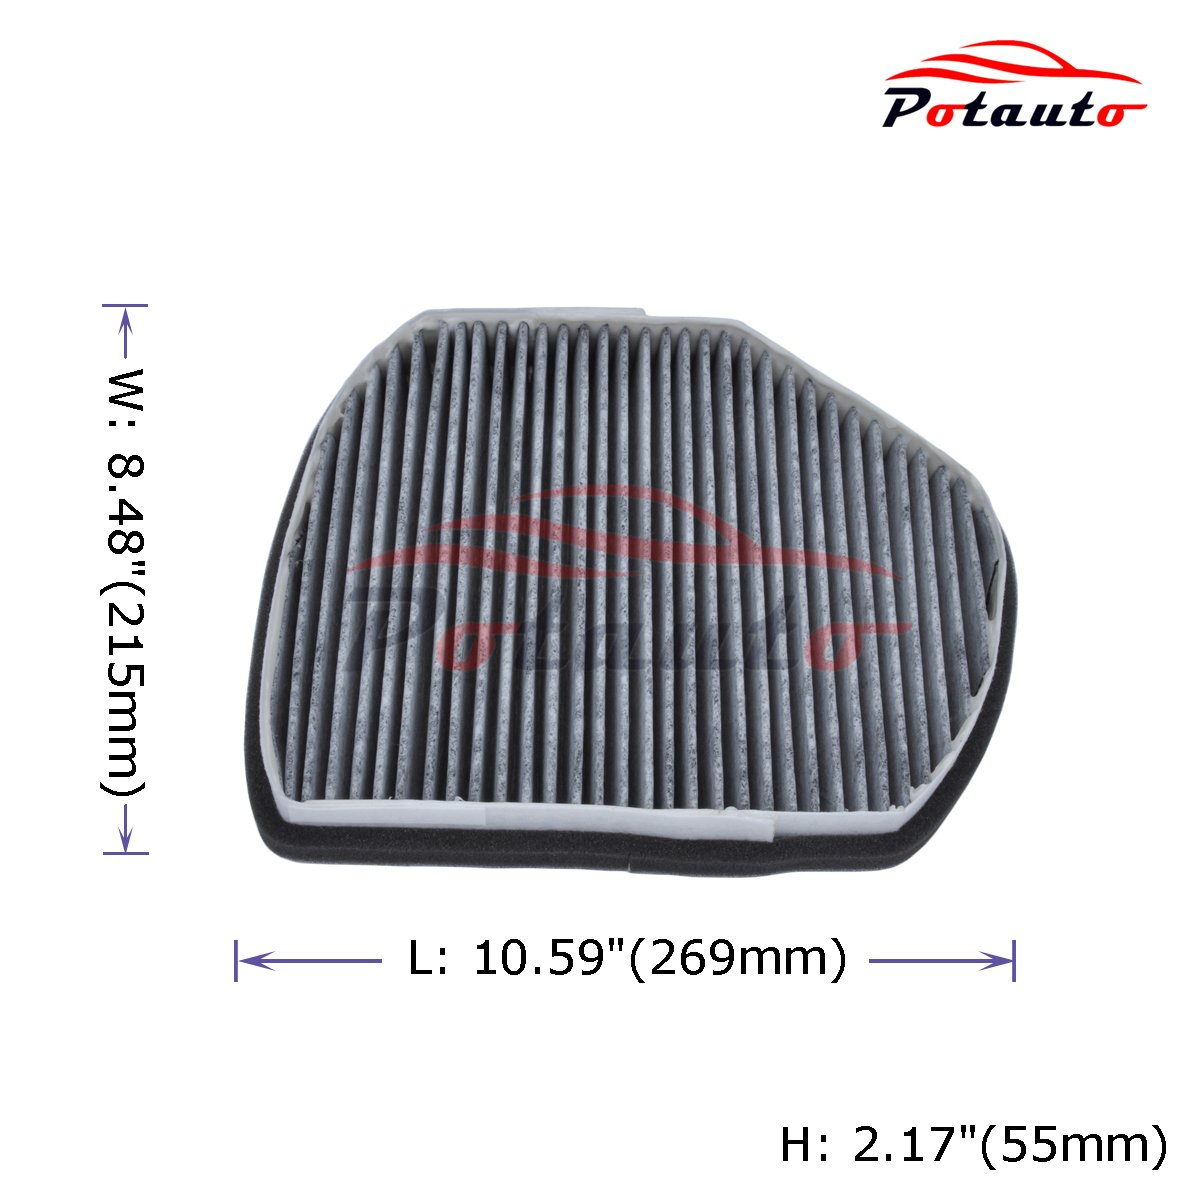 Potauto Map 4004c Heavy Activated Carbon Car Cabin Air Filter Slk230 Fuel Replacement Compatible With Chrysler Crossfire Mercedes C Class Clk Slk